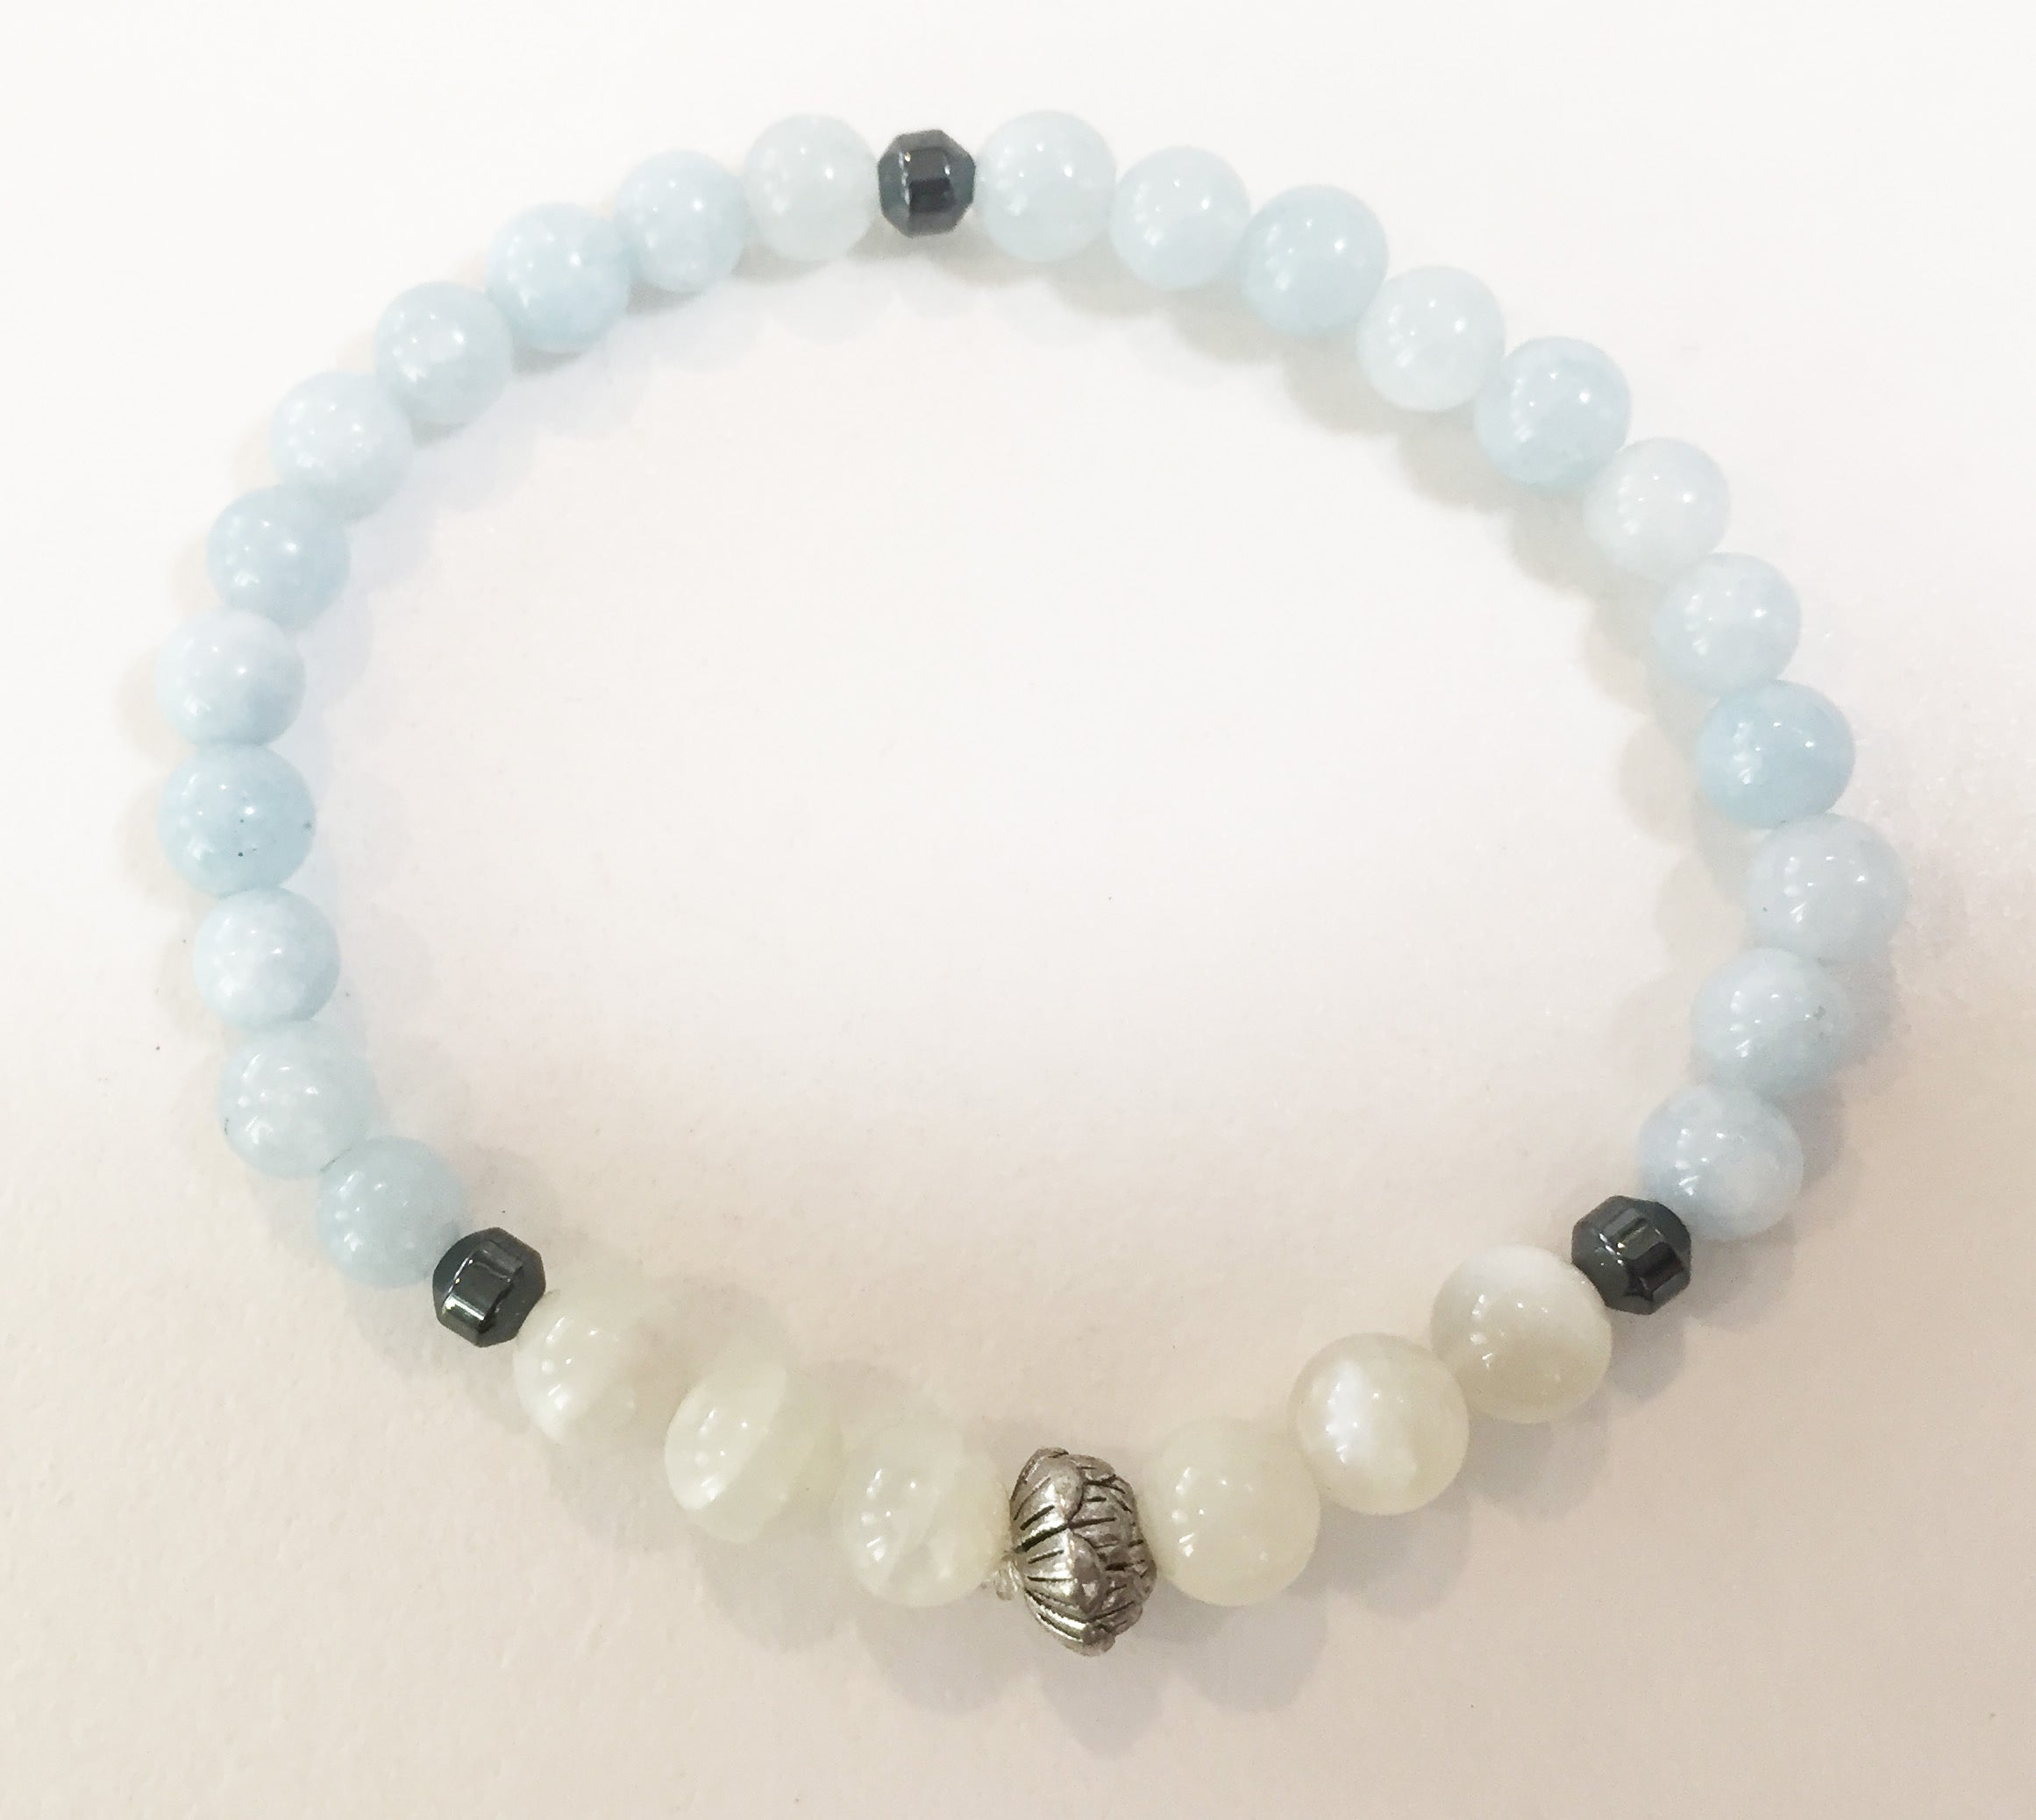 6mm Aquamarine & Moonstone Stretch Bracelet with Lotus Flower